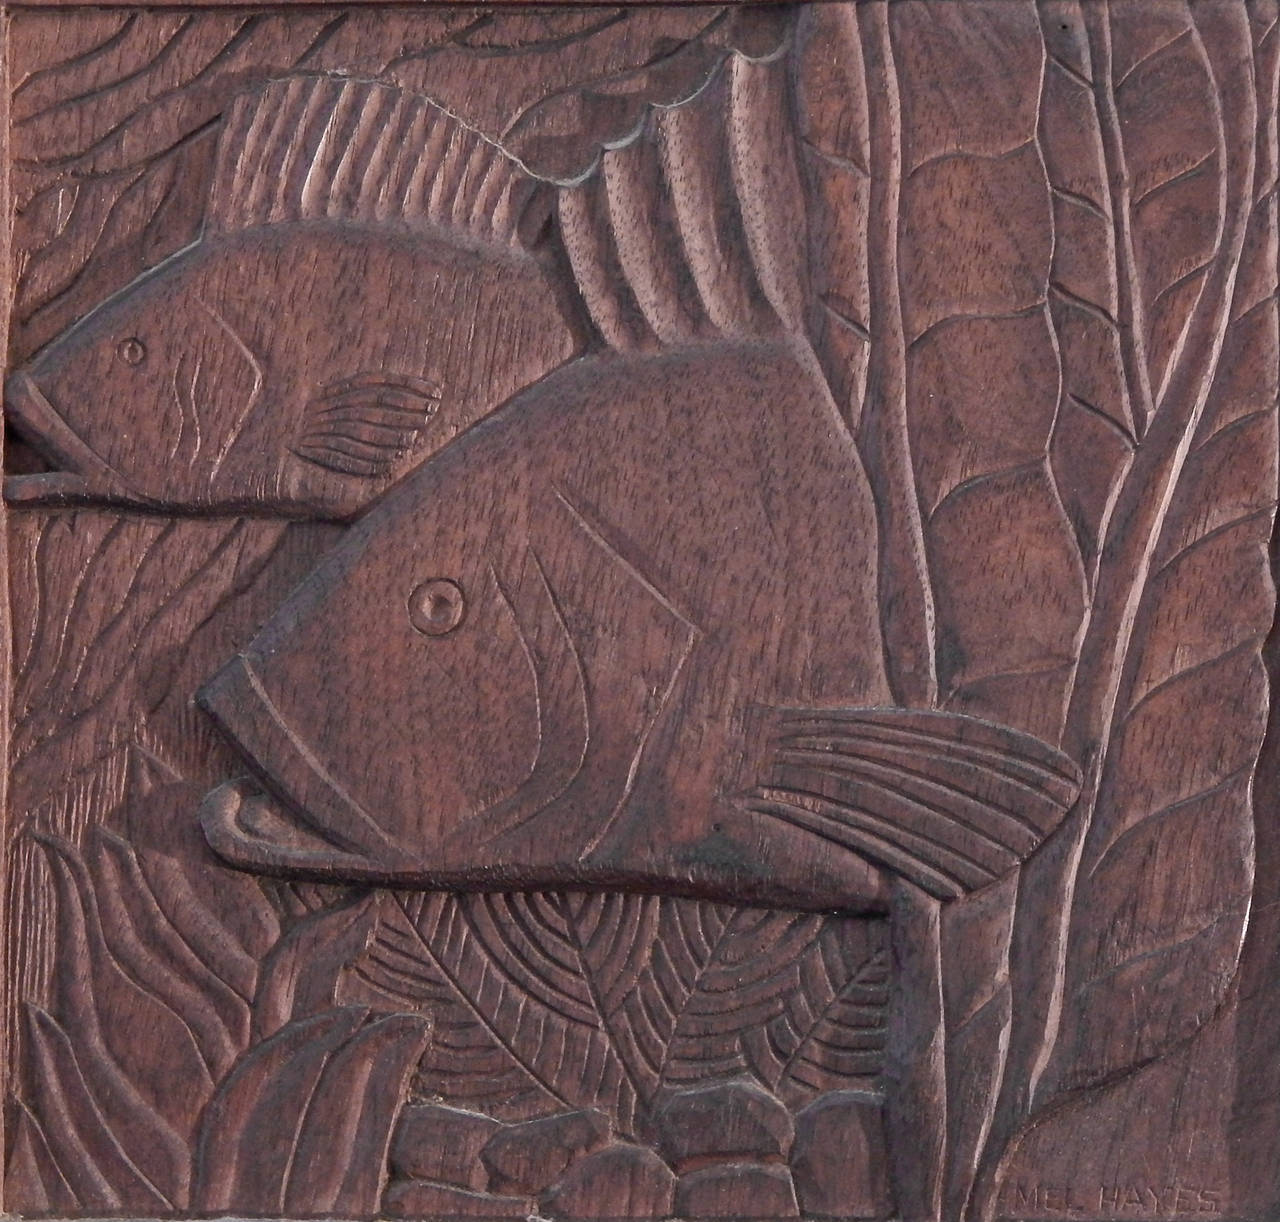 Fish And Seaweed Art Deco Bas Relief Panel Sculpted Walnut Image 2